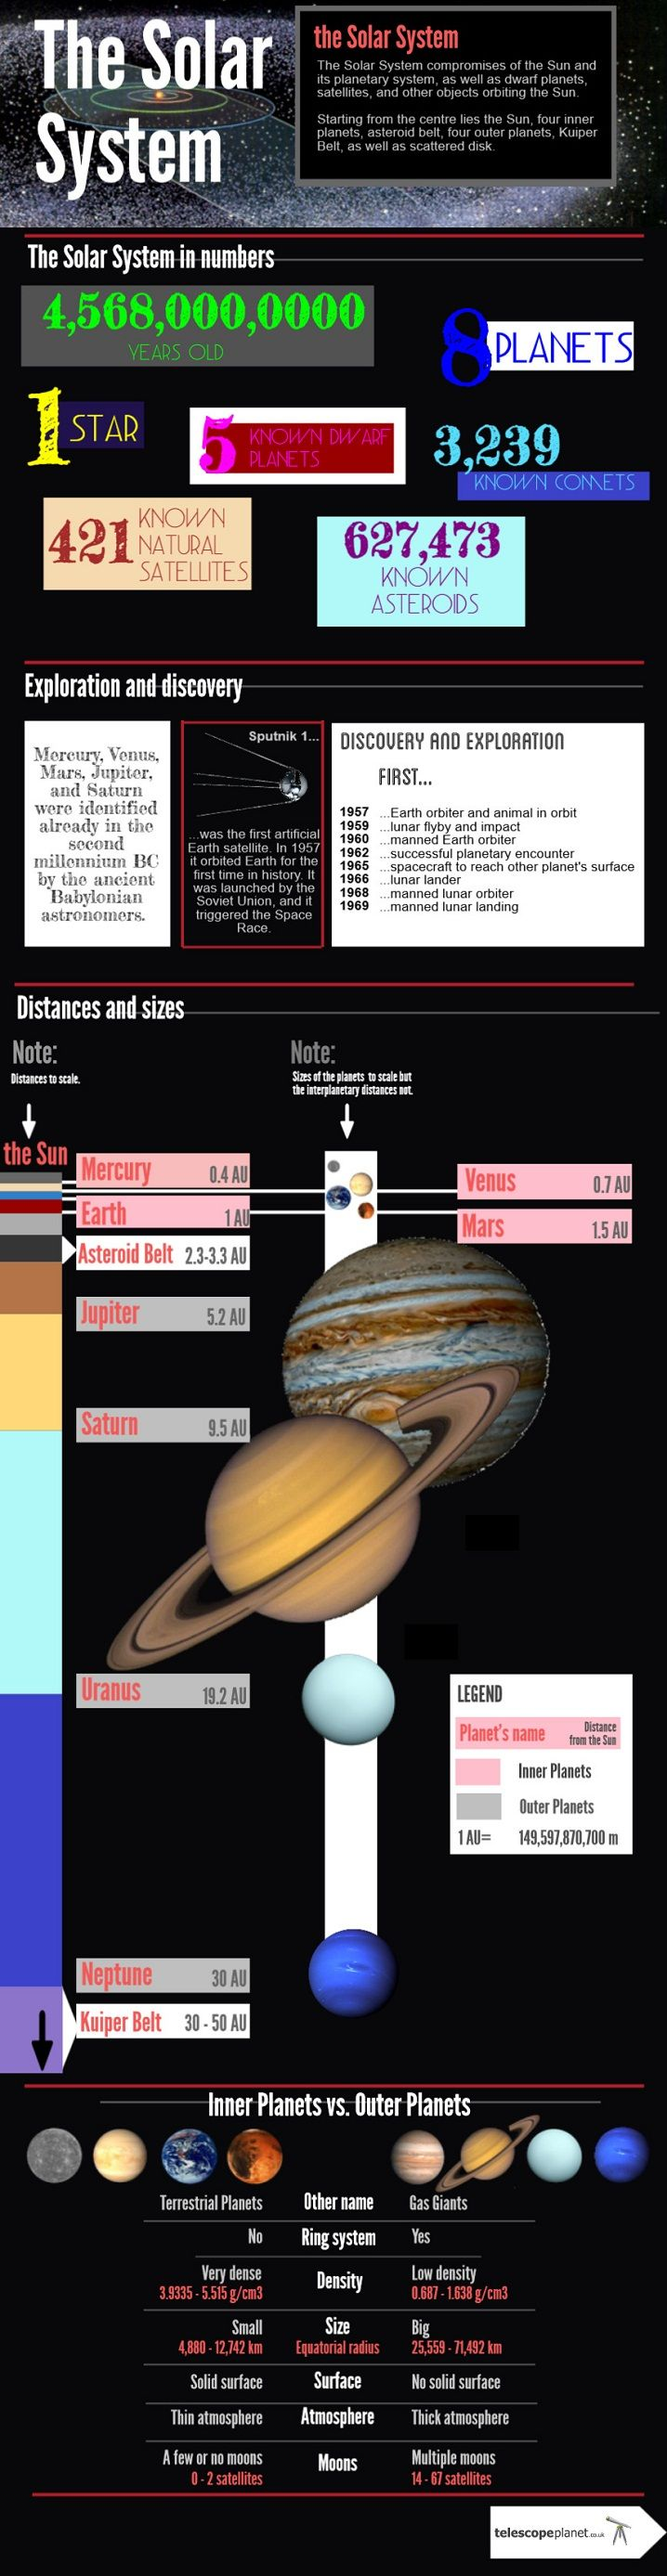 The newest Solar System Infographics- The Solar System description! For more check: http://www.telescopeplanet.co.uk/customer-service/infographics.html #telescopeplanet #infographics #astronomy